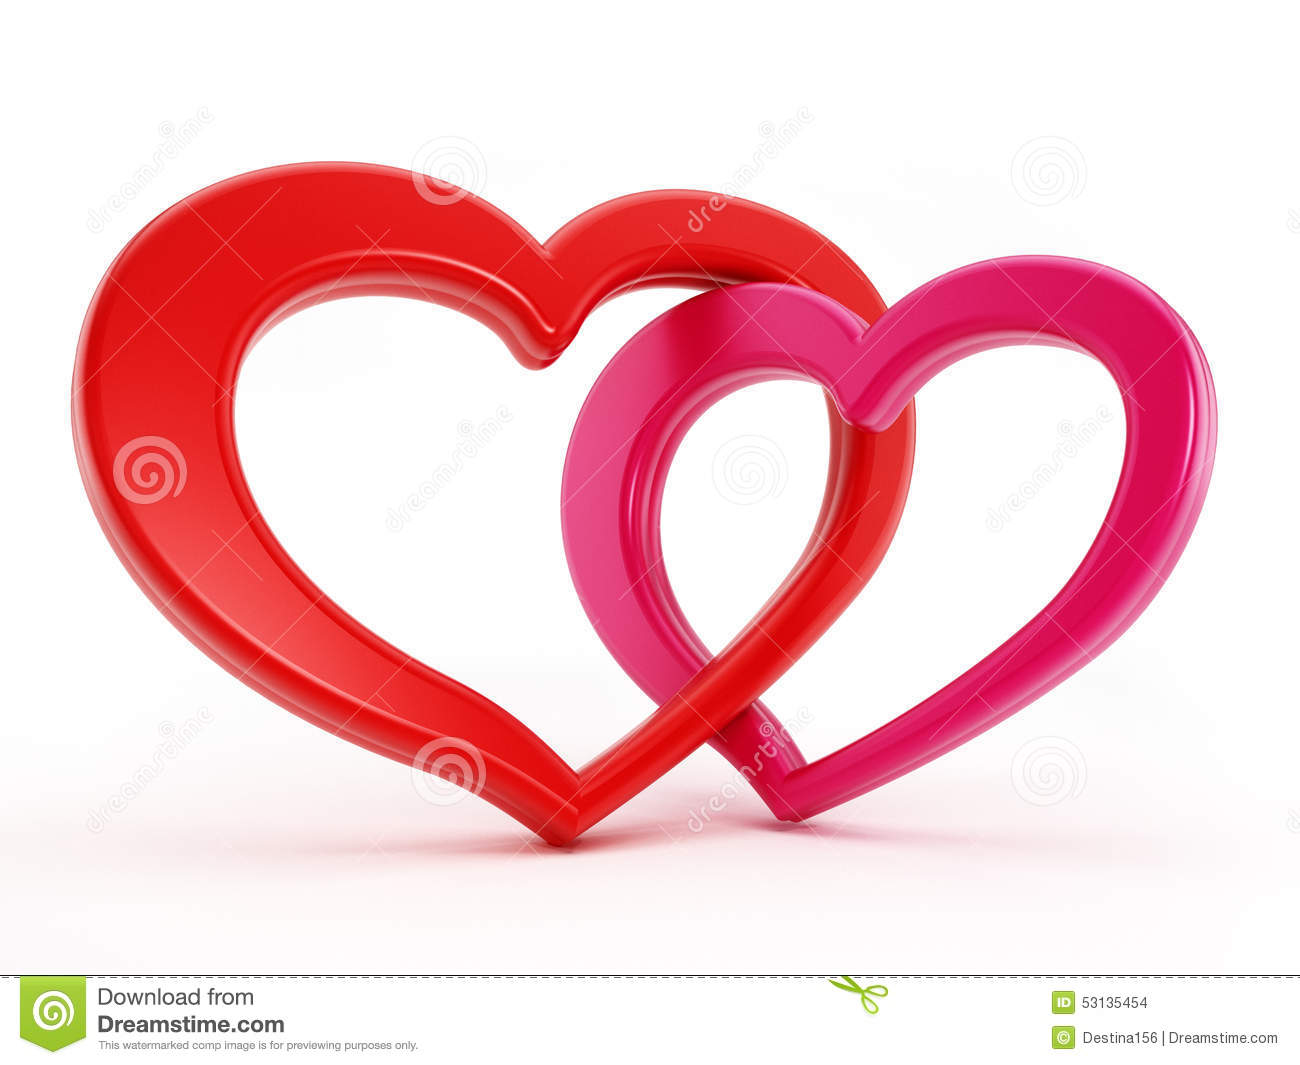 Two Hearts Intertwined Stock Illustration - Image: 53135454